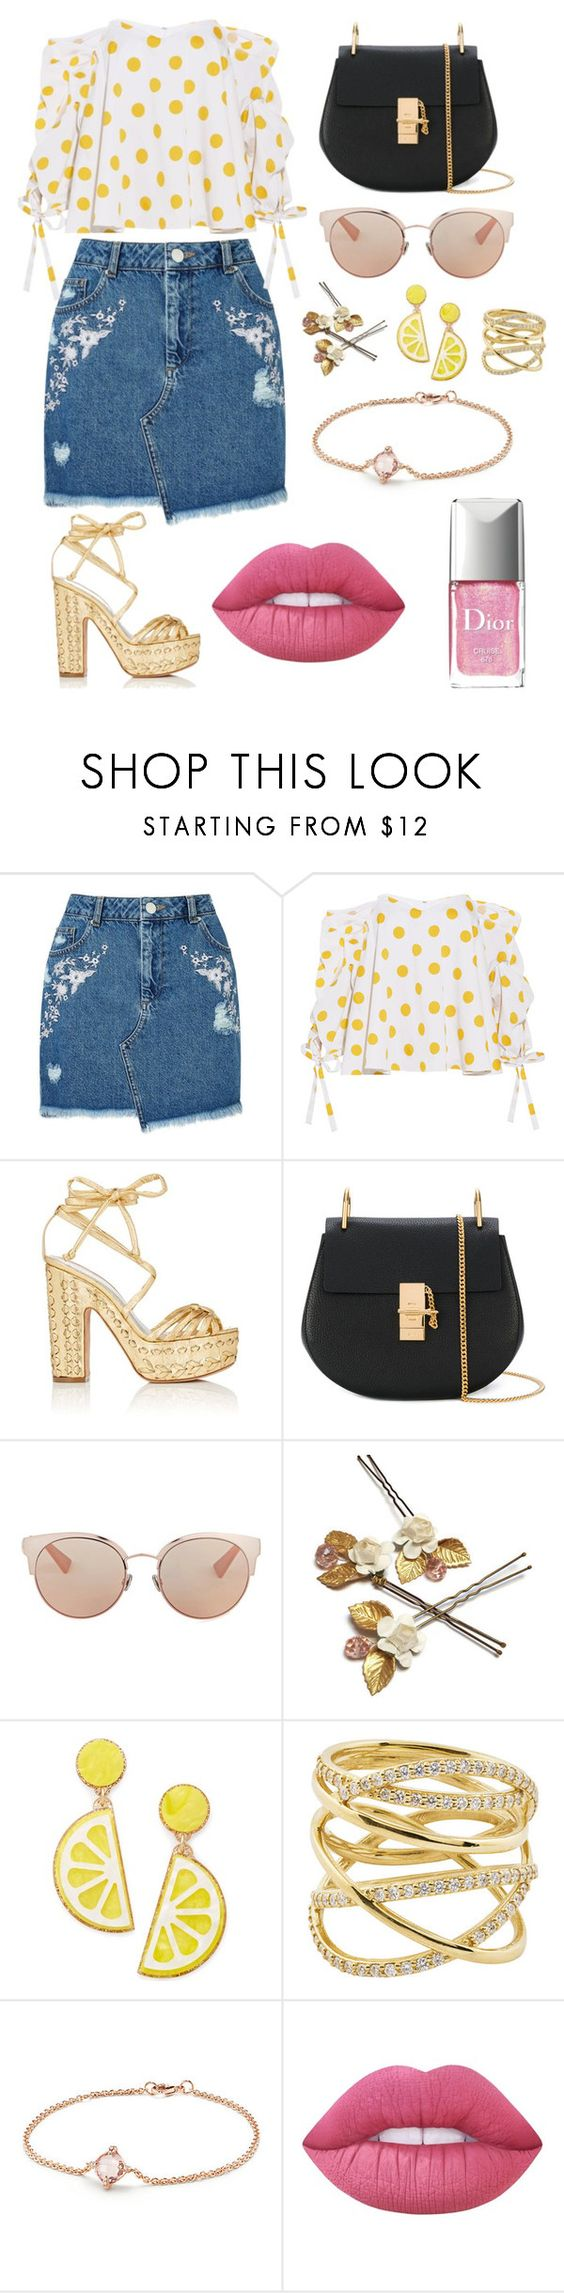 """Untitled #7"" by soninha97 on Polyvore featuring Miss Selfridge, Caroline Constas, Alchimia Di Ballin, Chloé, Christian Dior, Celebrate Shop, Lana, David Yurman and Lime Crime"